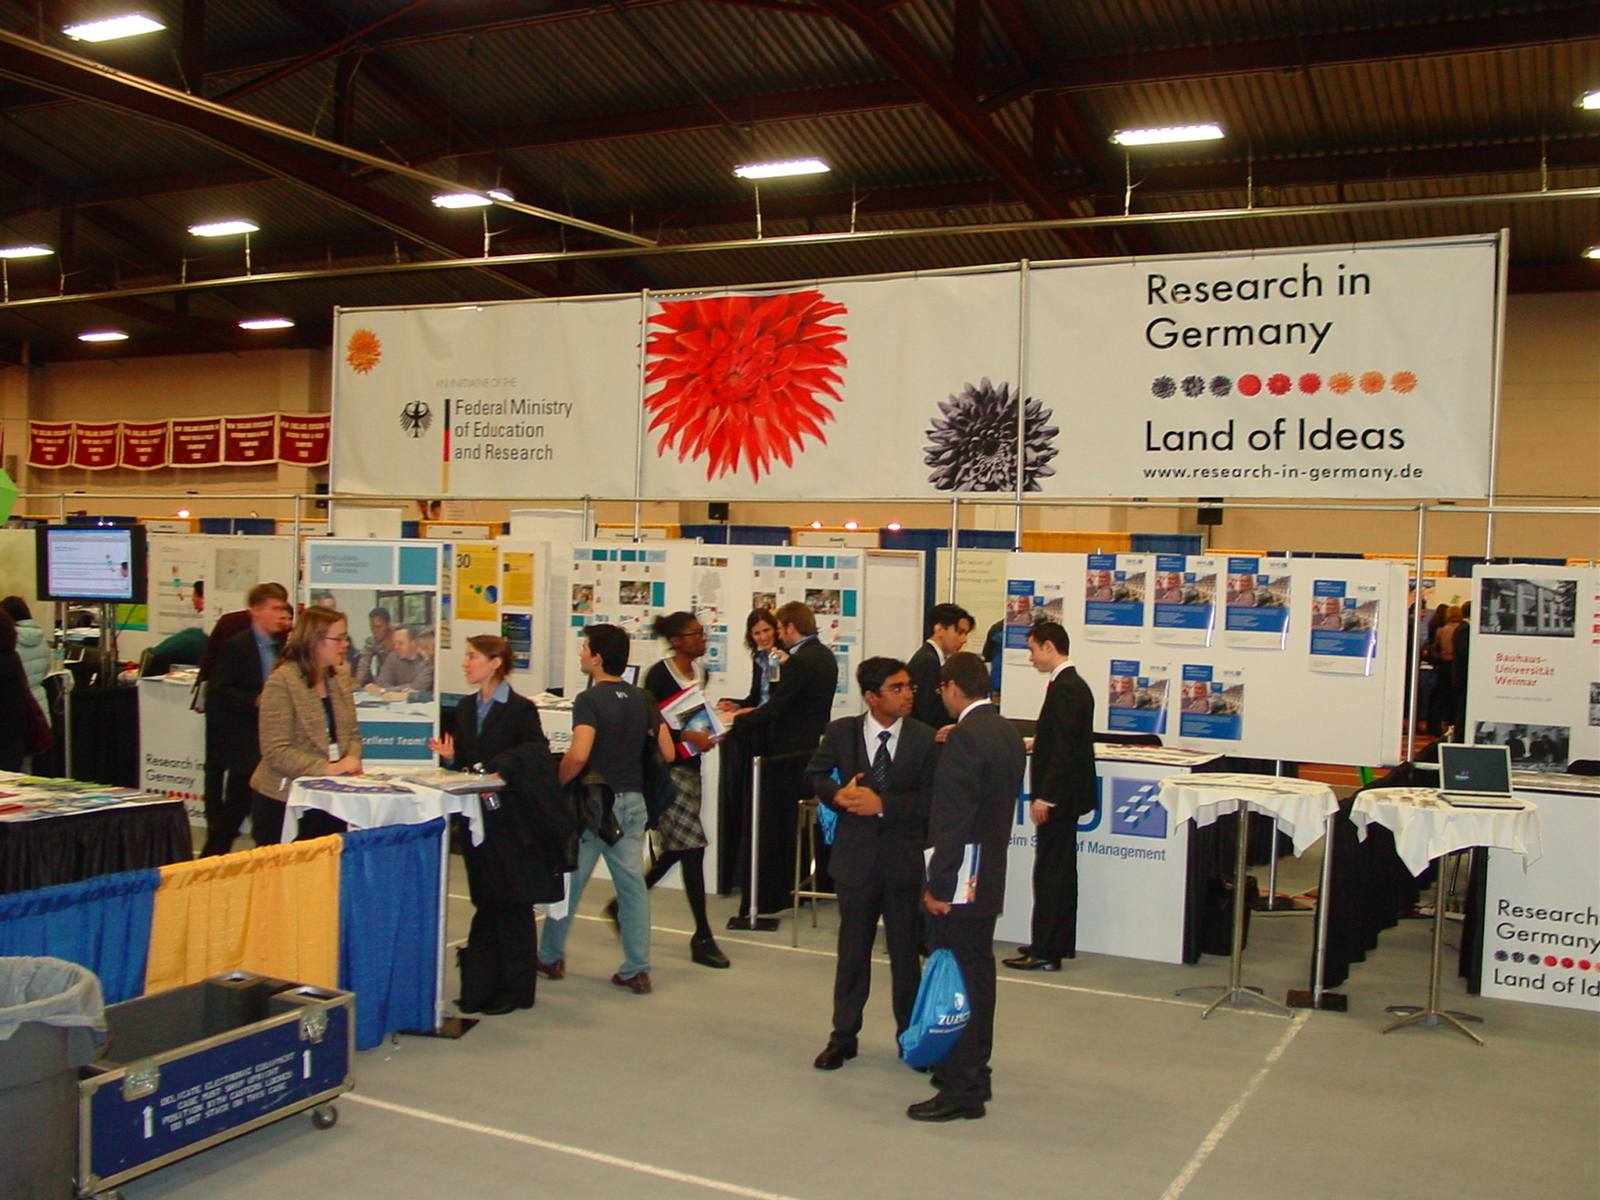 European Career Fair